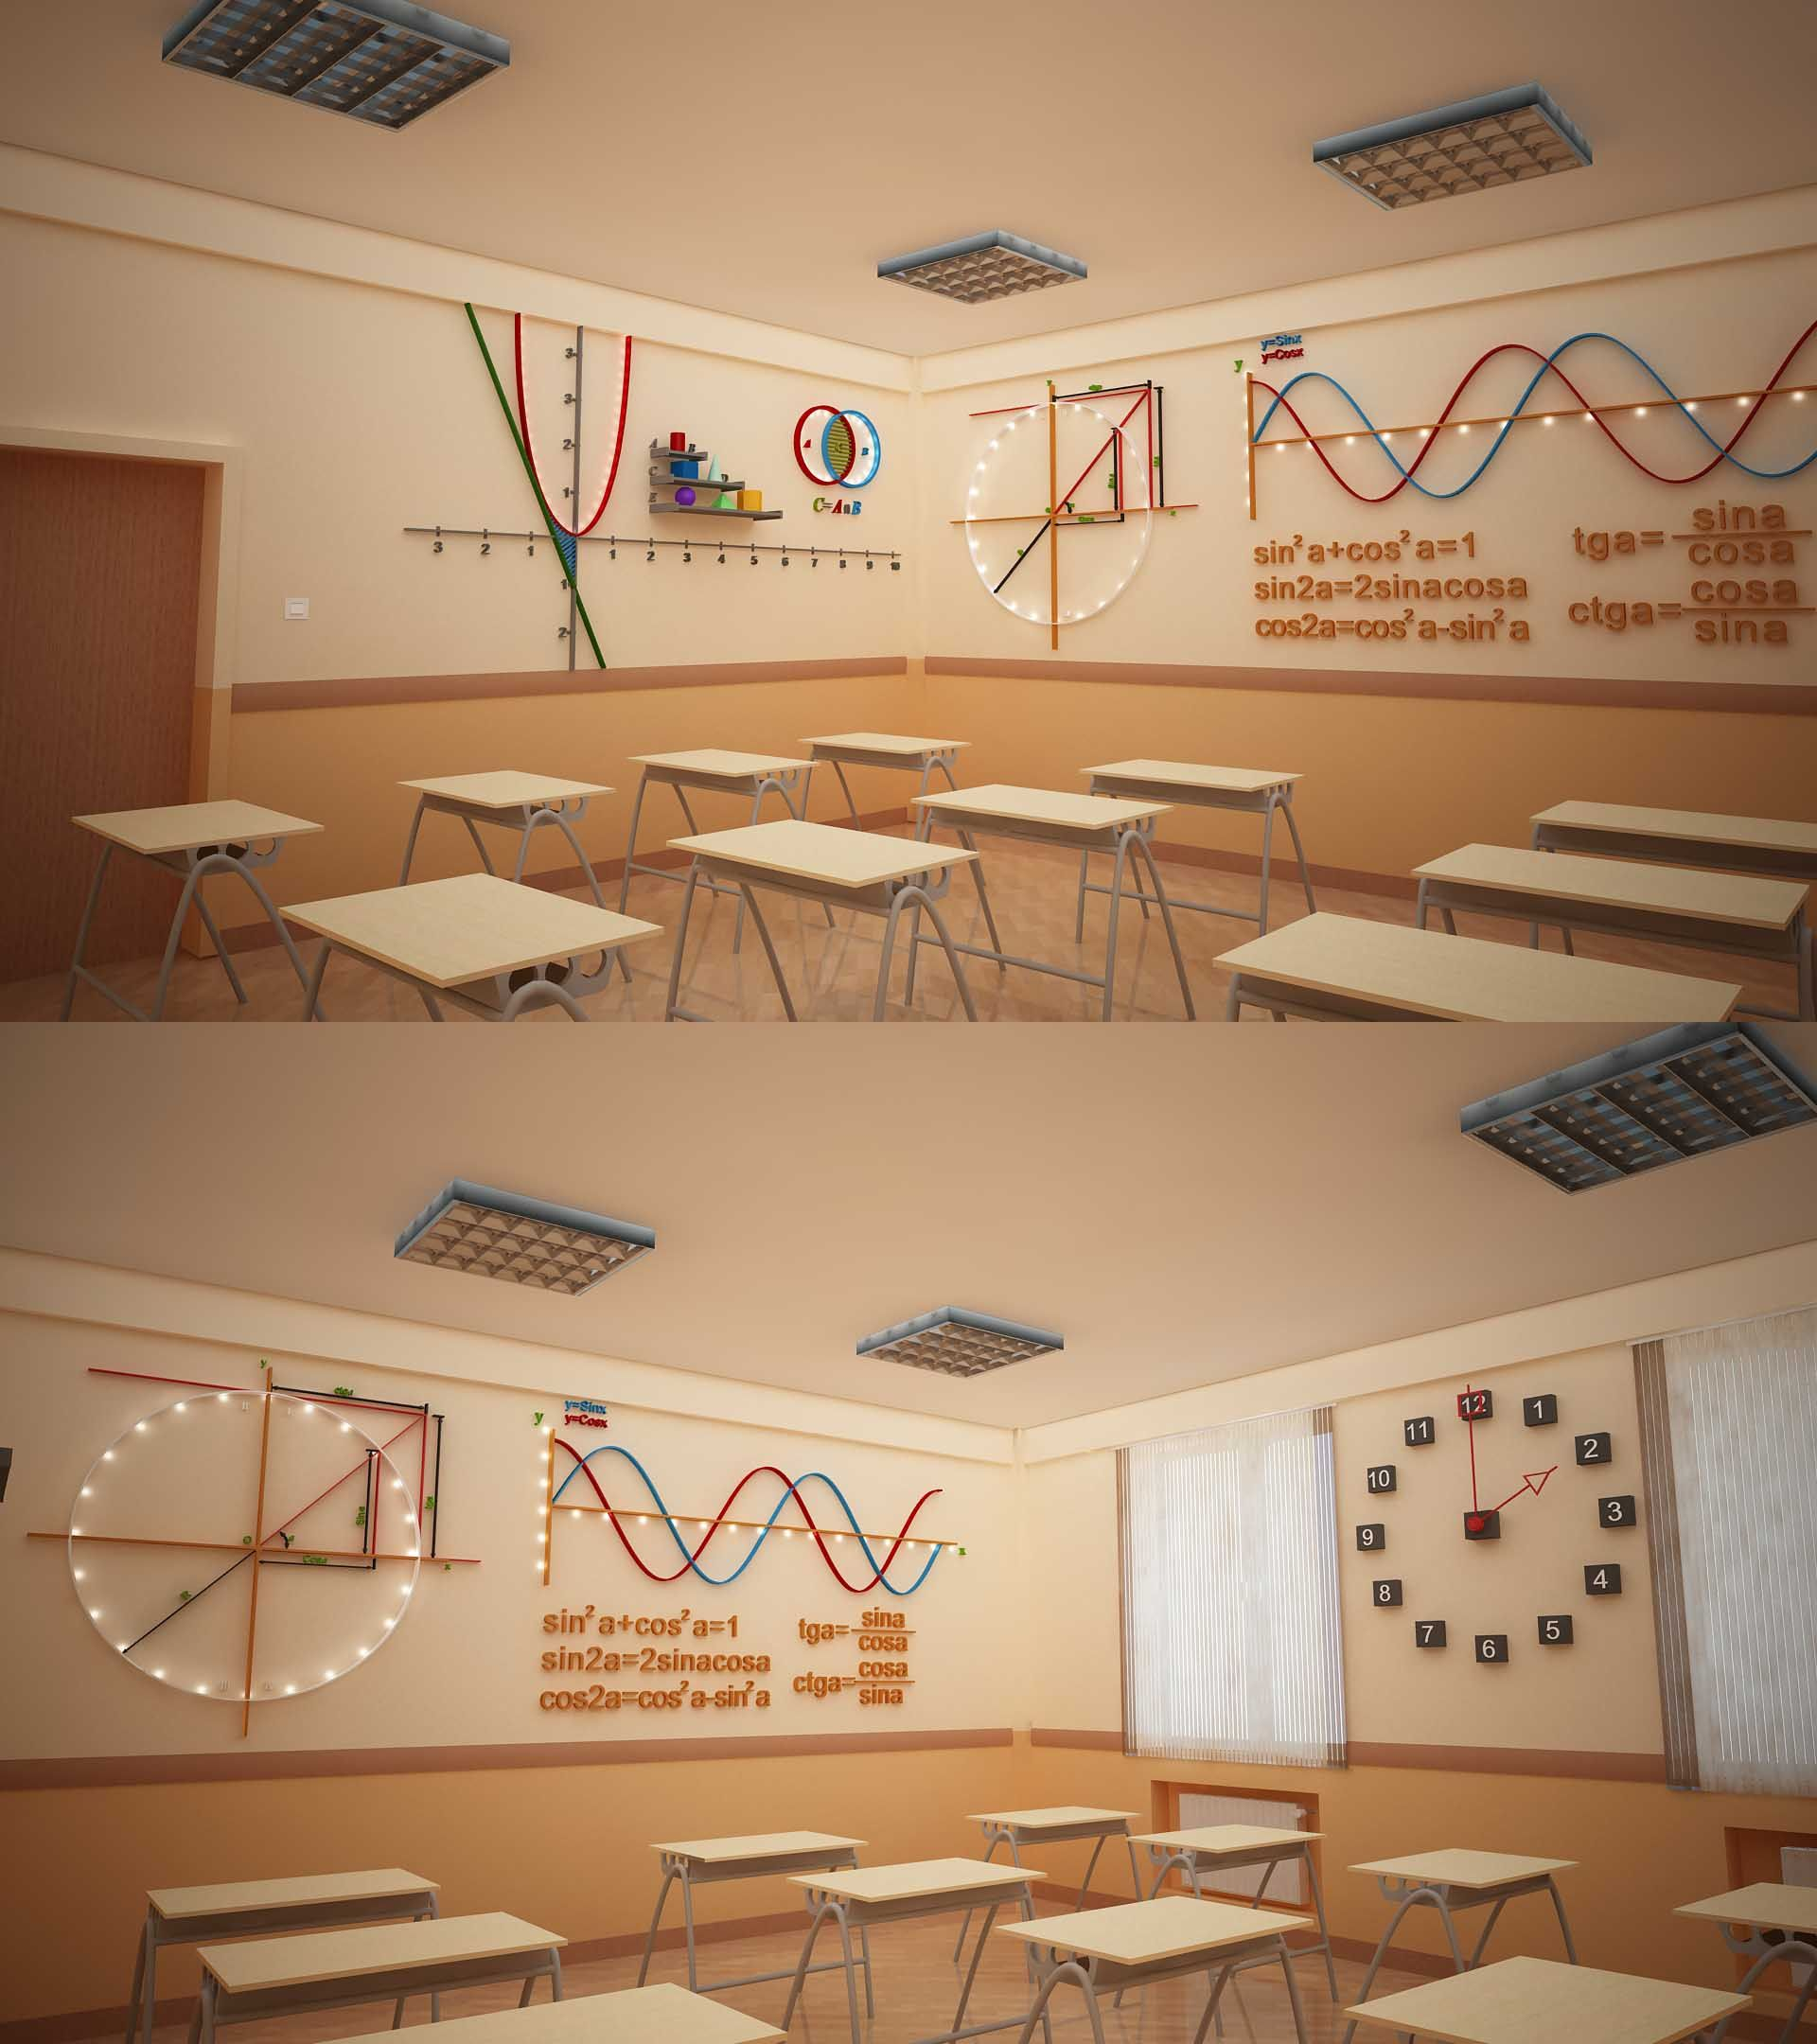 High School Math Classroom Design : Bms baku modern school math classroom design by